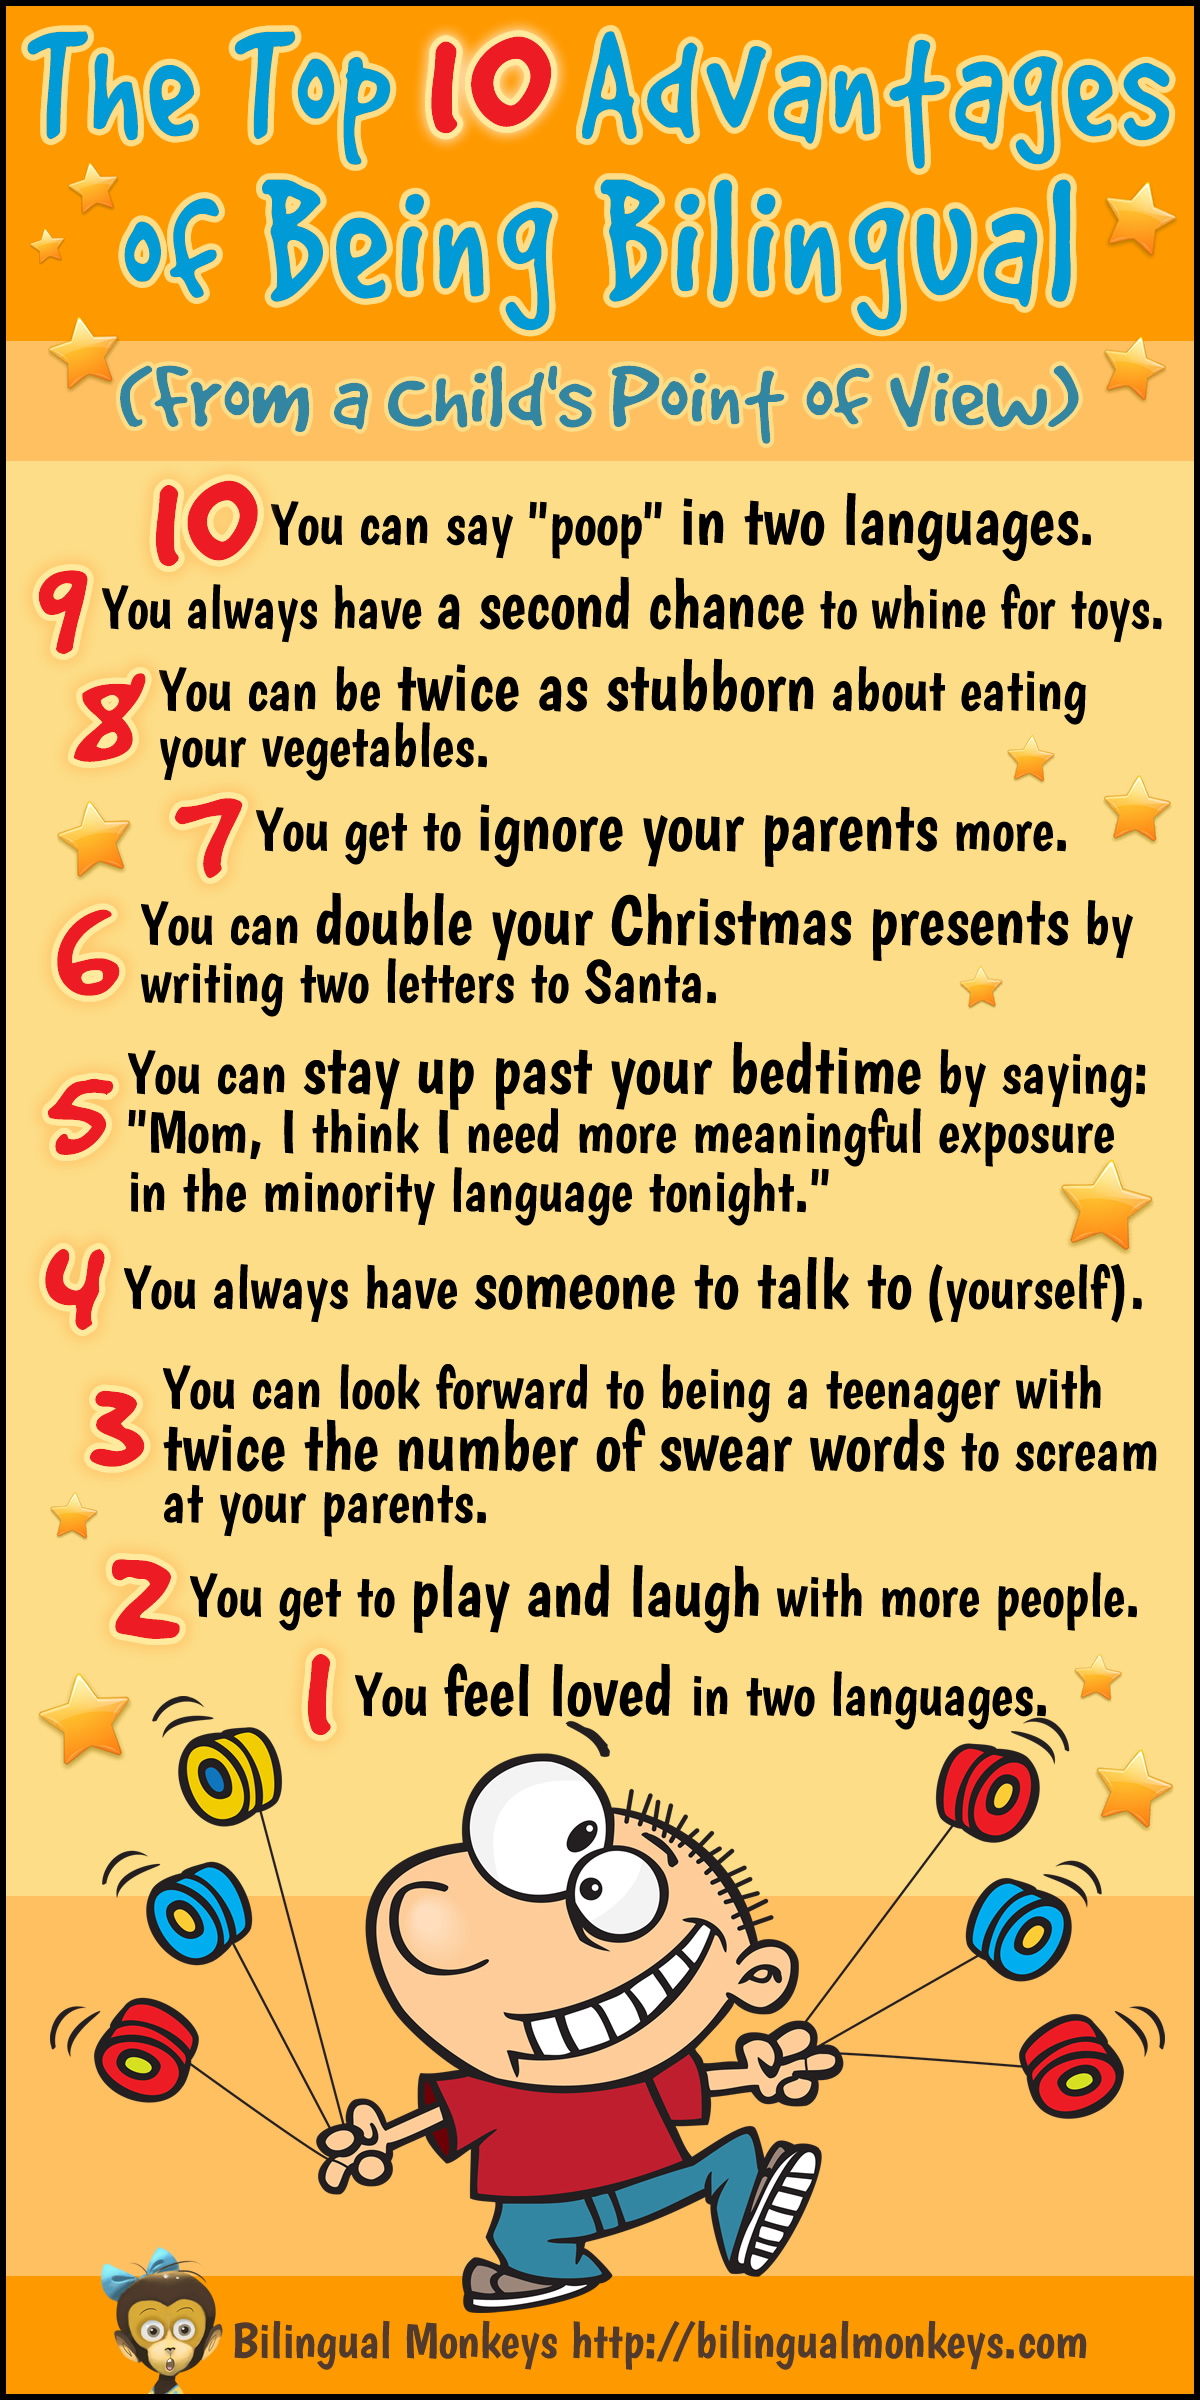 INFOGRAPHIC: The Top 10 Advantages of Being Bilingual (From a Child